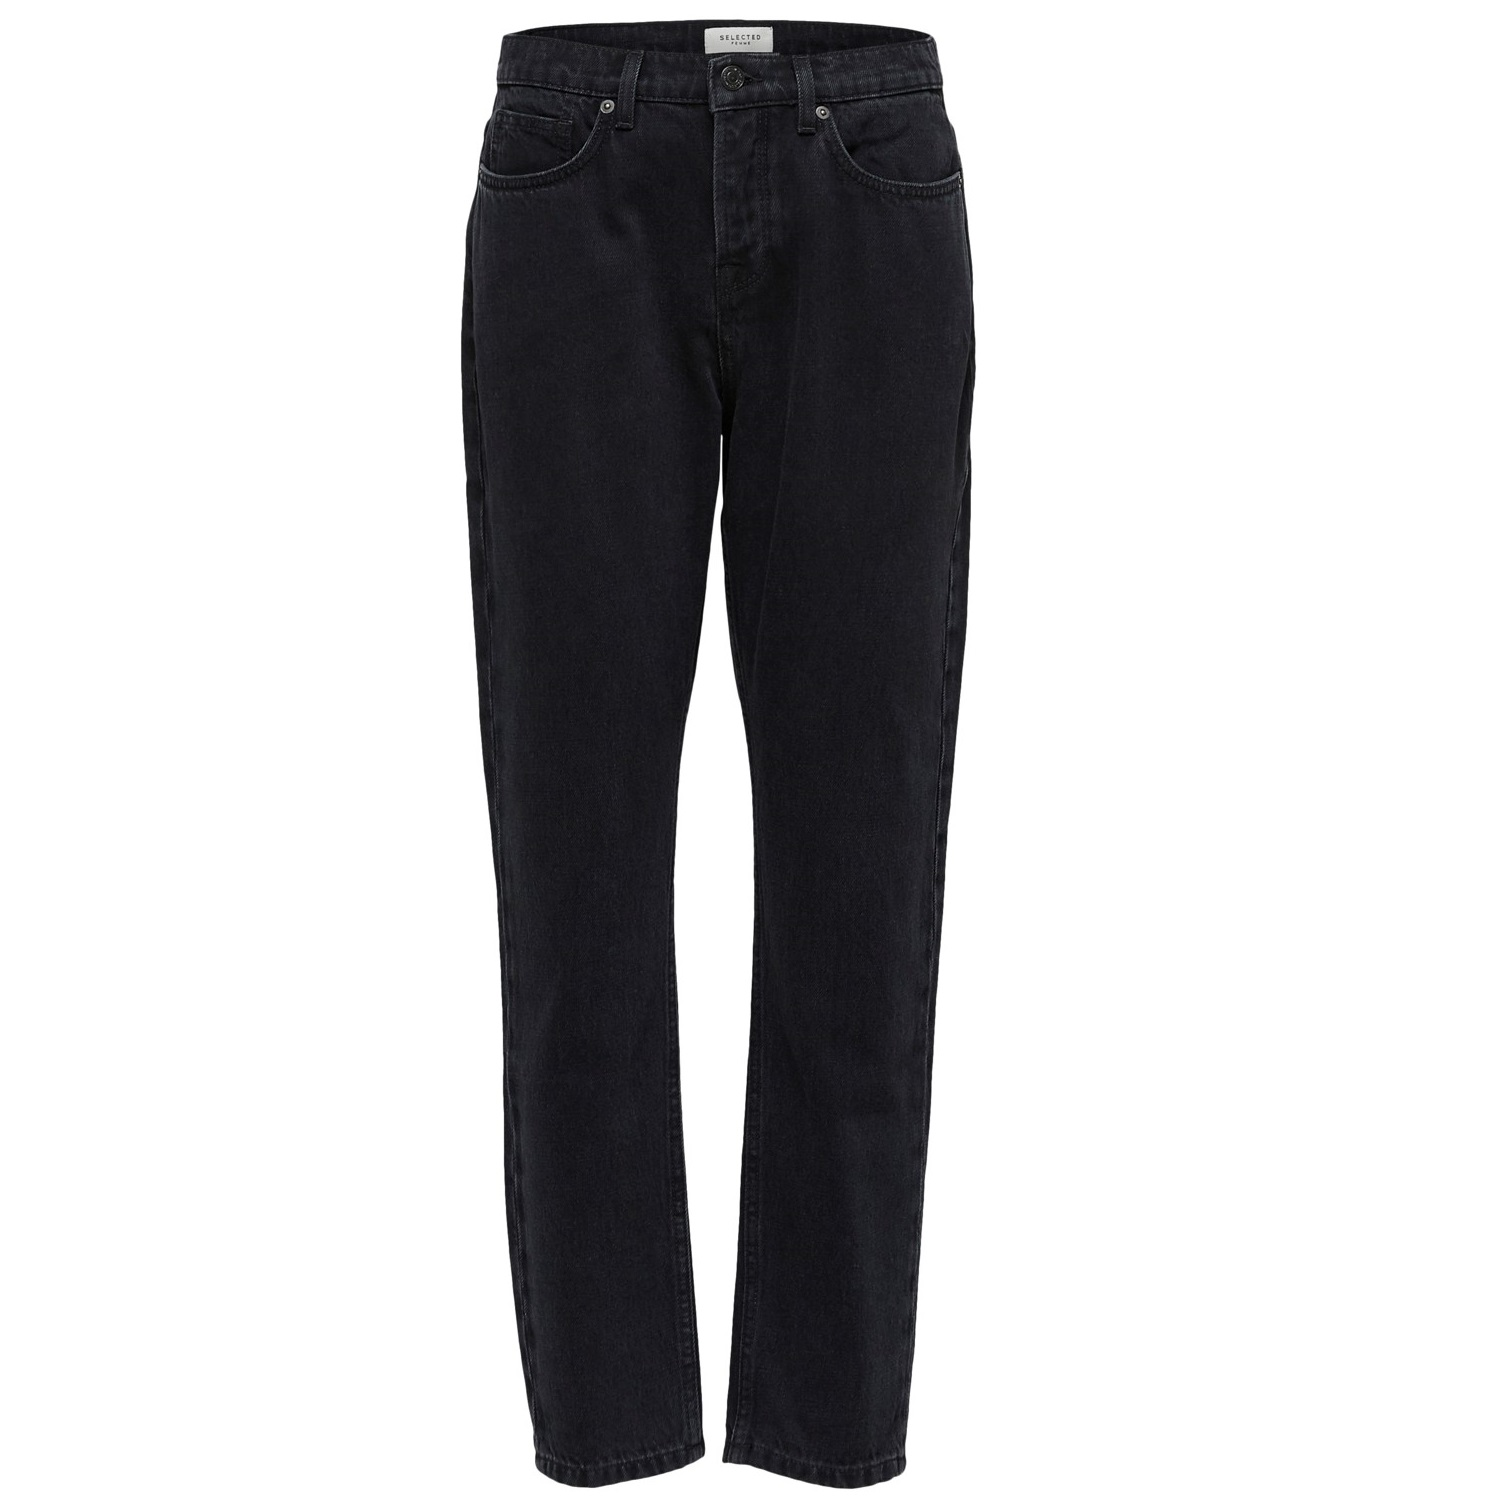 SALE Lola High Waist Mom Jeans — Black 25w